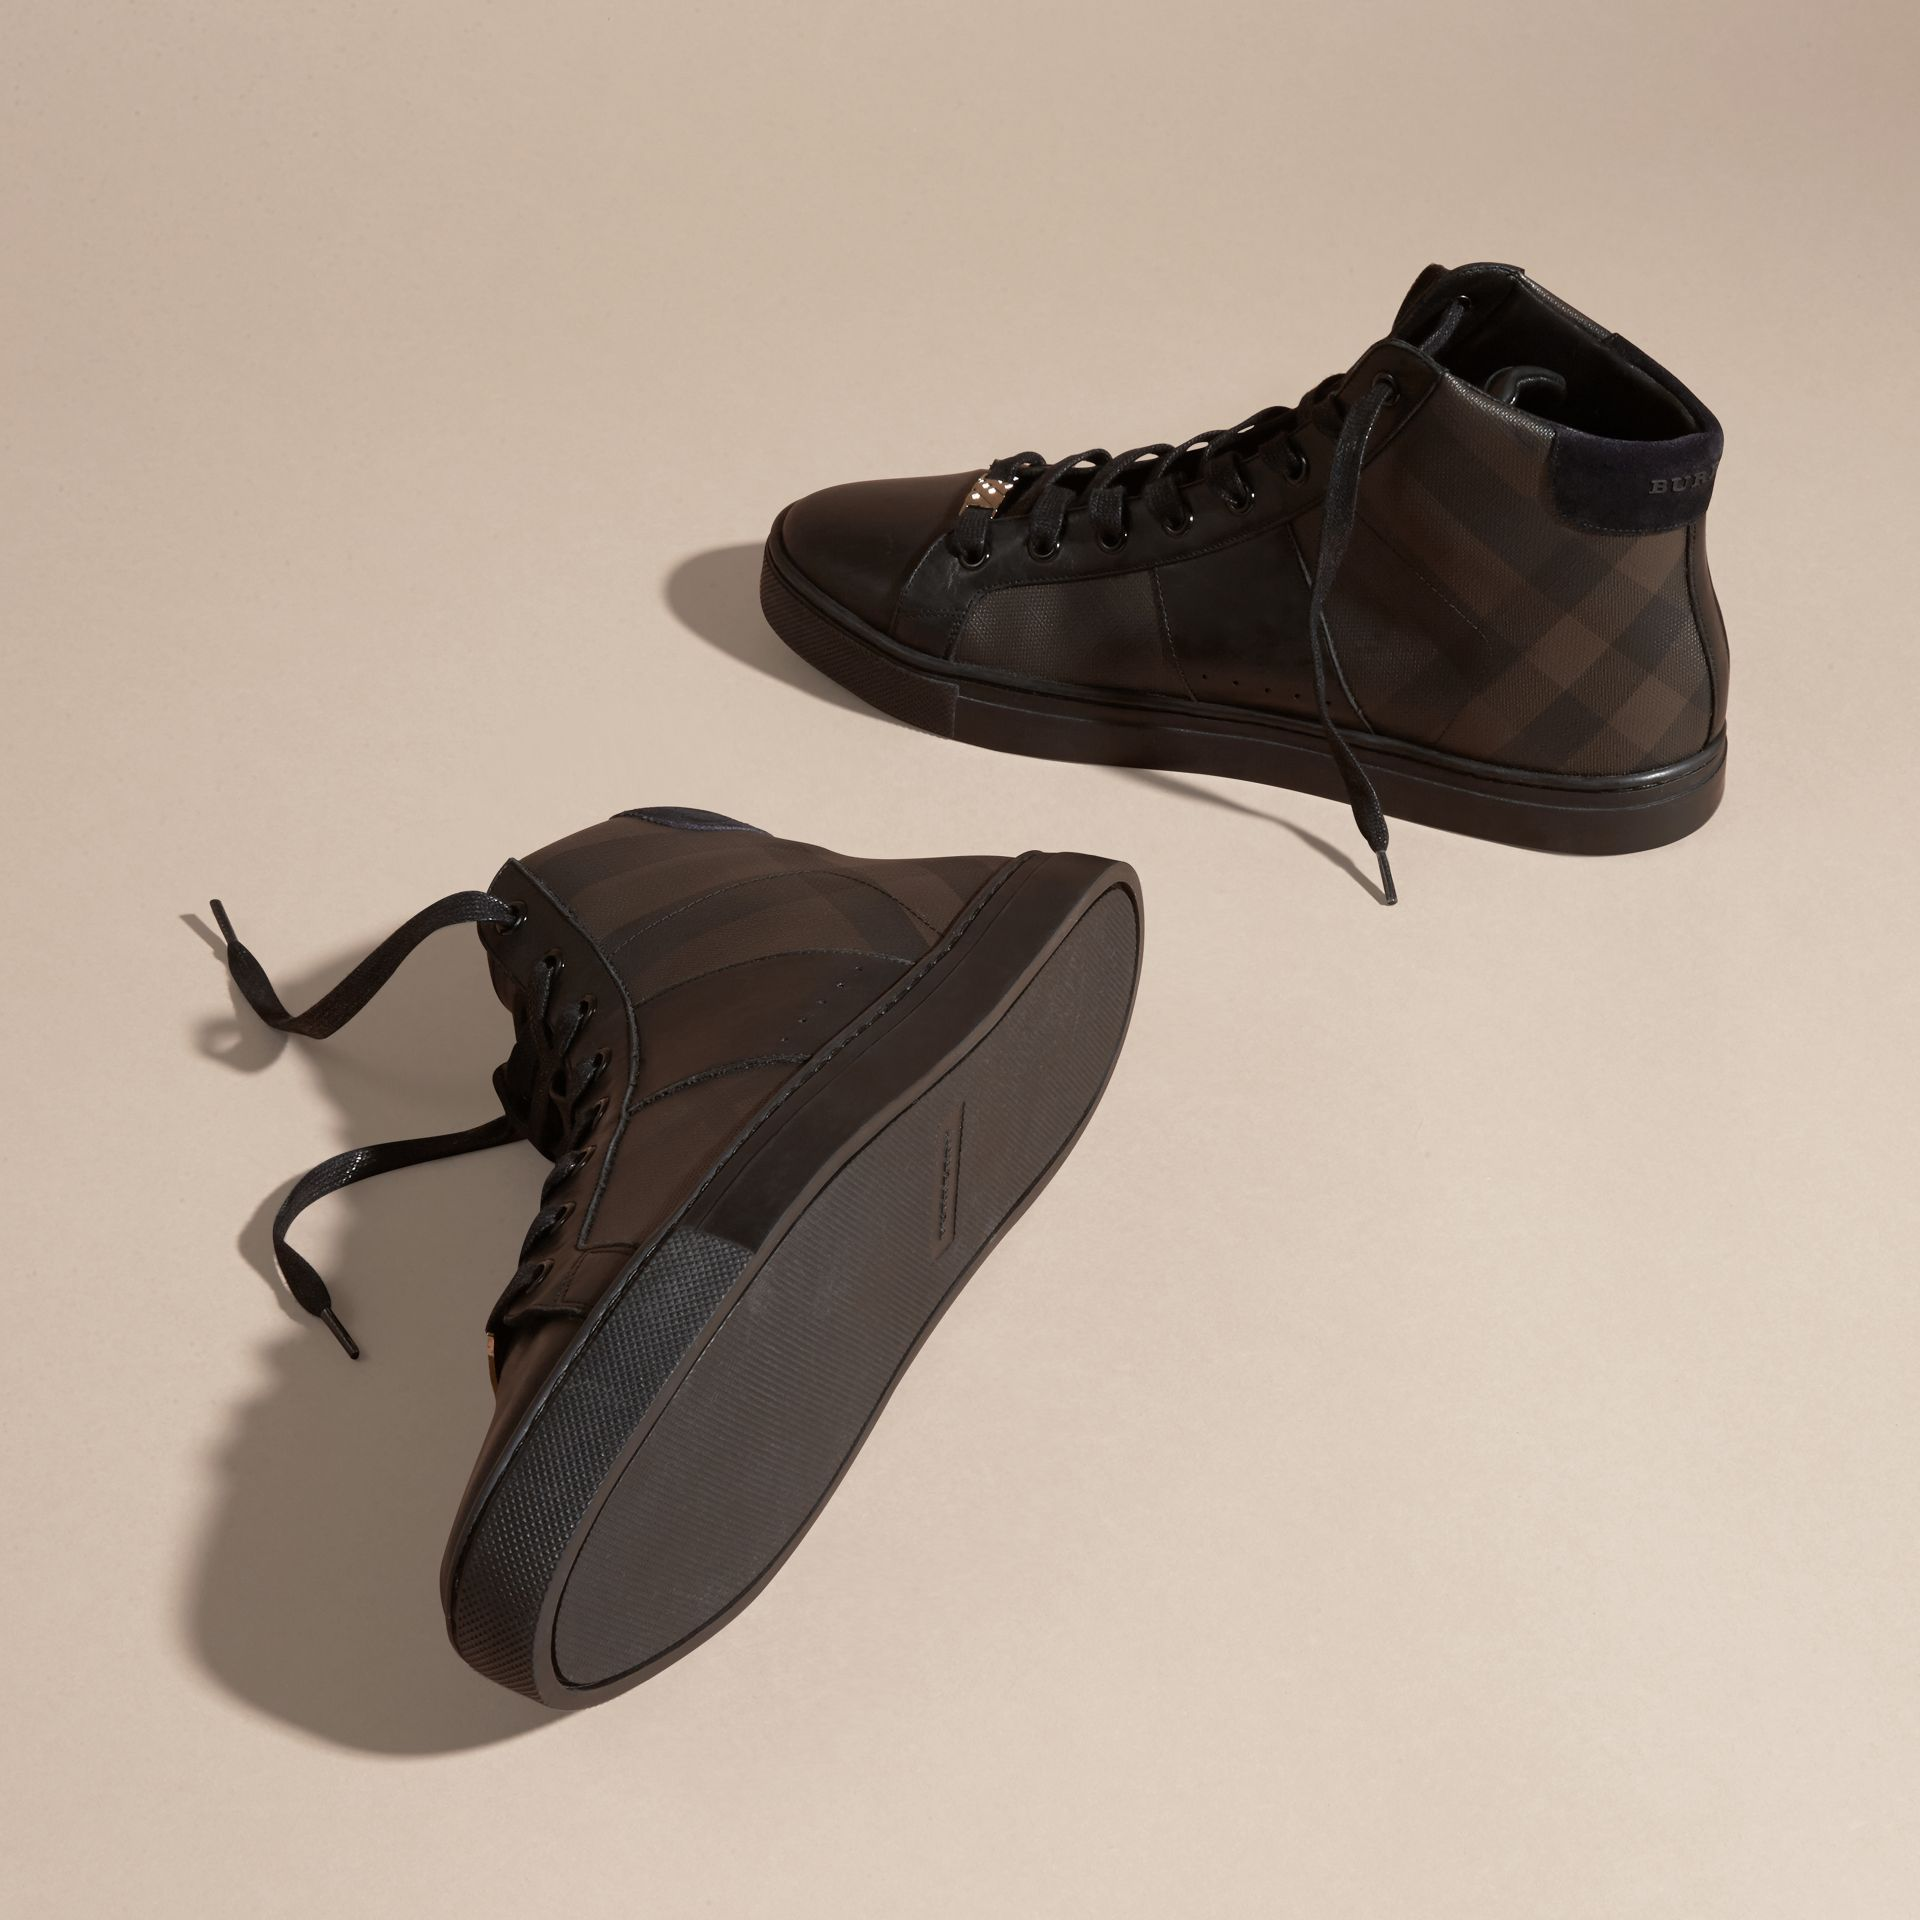 London Check and Leather High-Top Trainers in Smoked Chocolate - Men | Burberry - gallery image 5